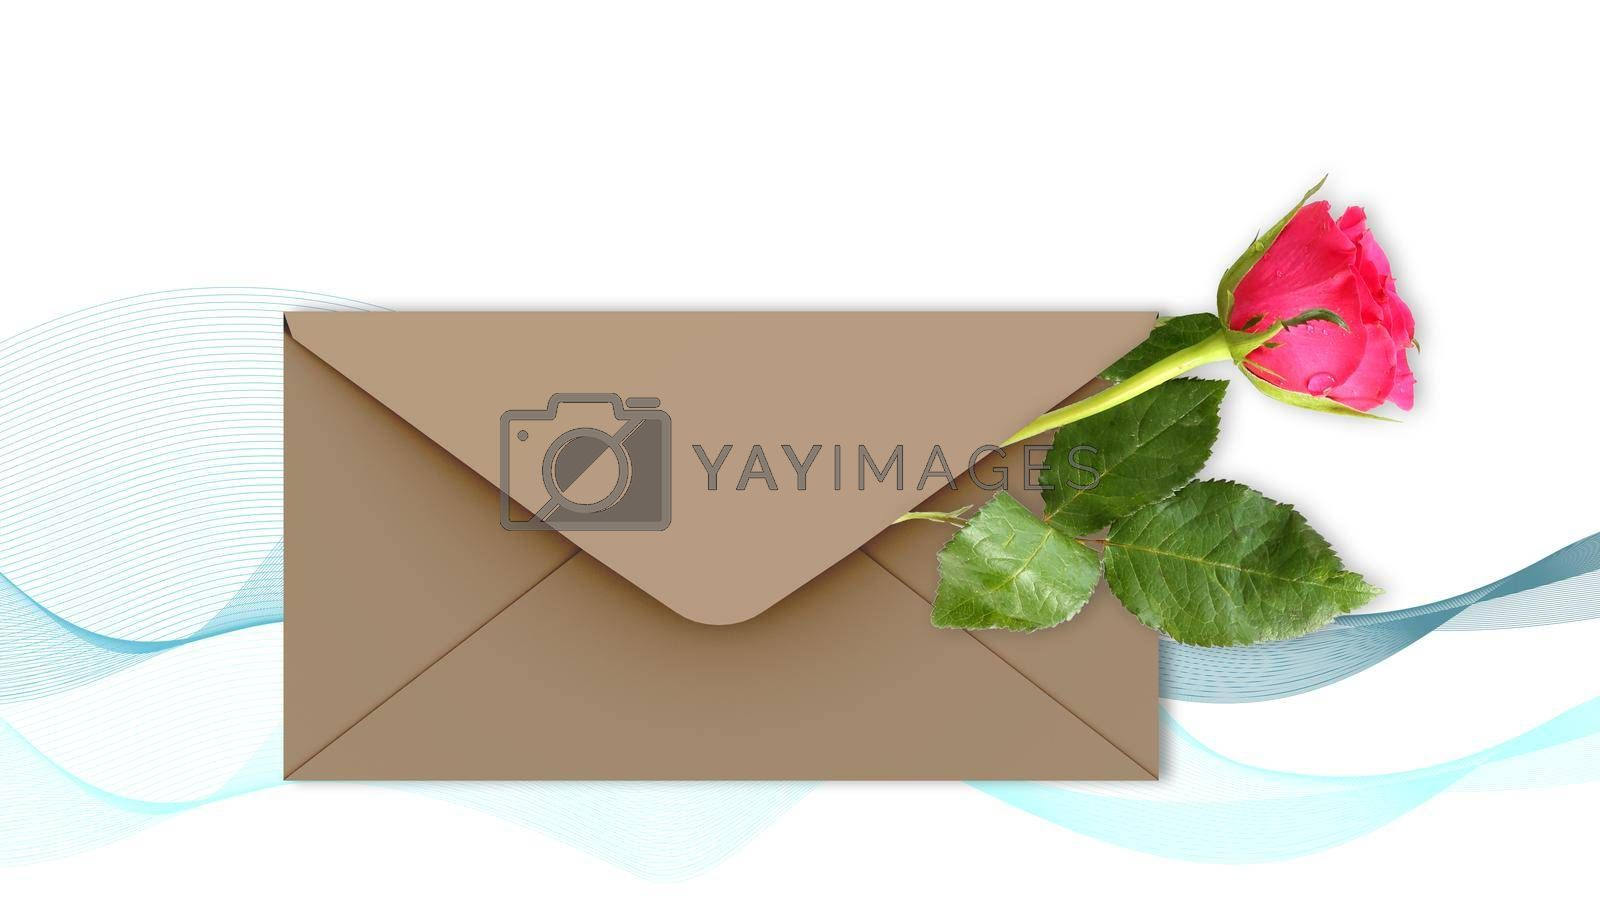 Single Red rose flower on white background with abstract waves, envelop for mock up. Flowers for holiday cards, mother's day, 8 March, birthday, wedding, Valentine's Day. Top view, flat lay